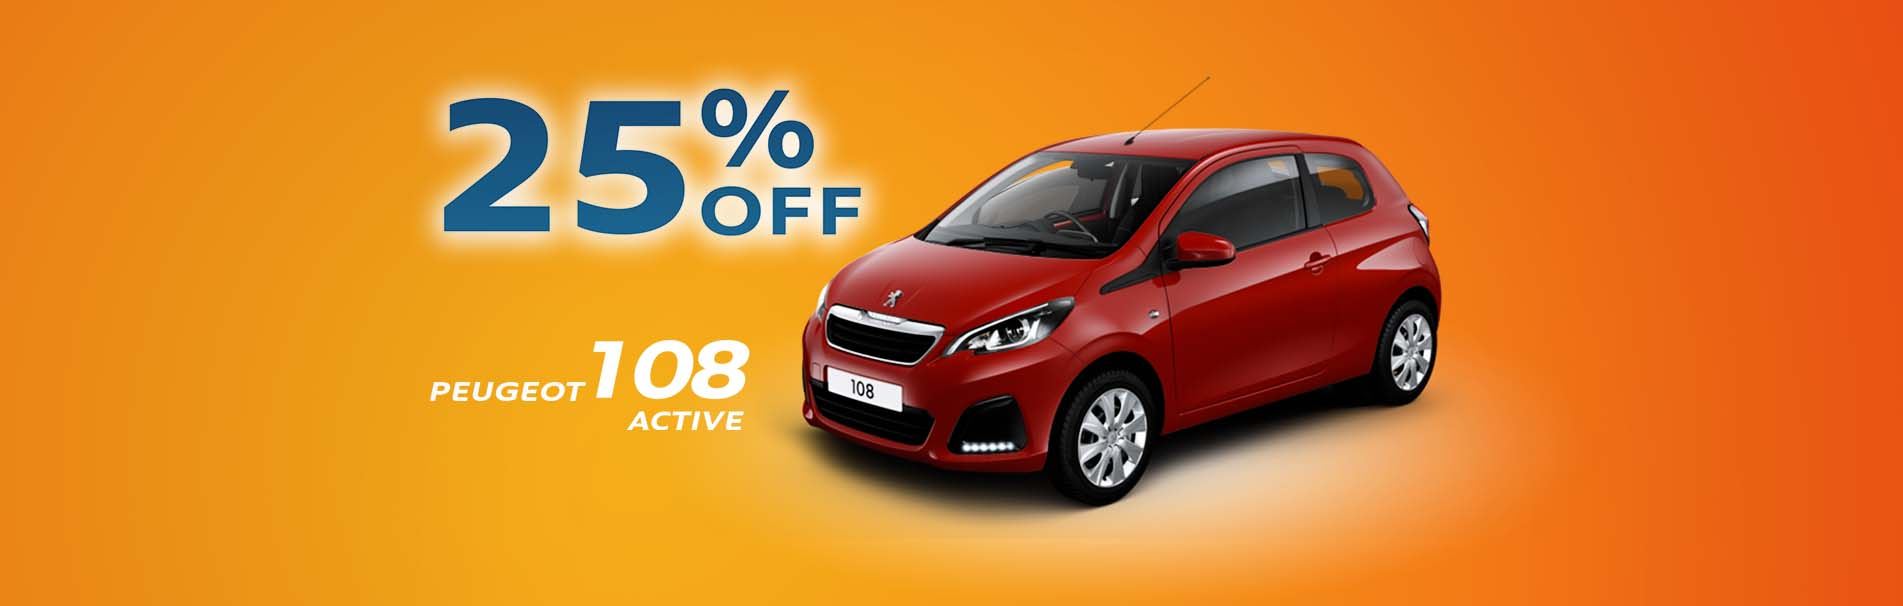 peugeot-108-active-delivery-mileage-special-25-percent-discount-sli